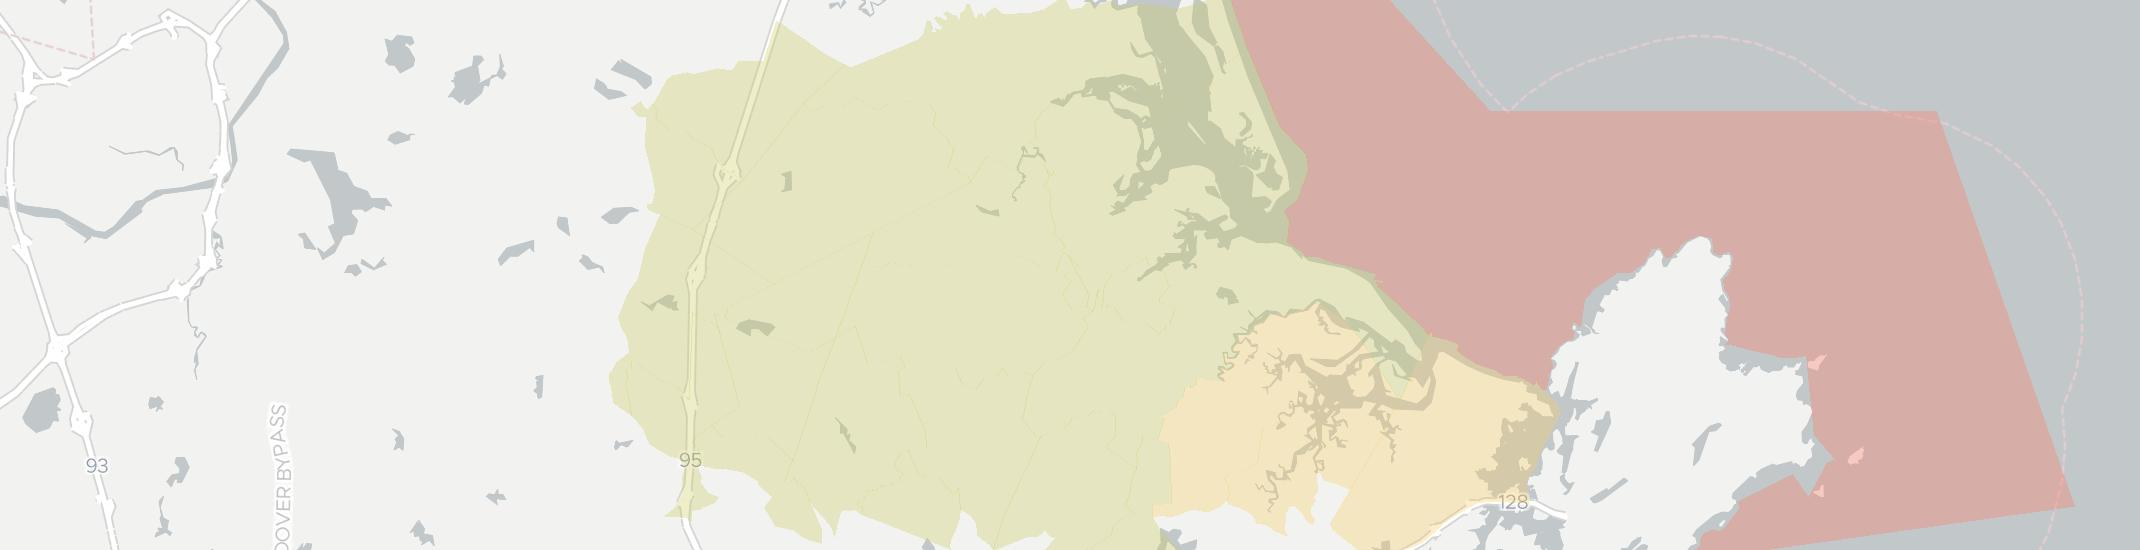 Ipswich Internet Competition Map. Click for interactive map.